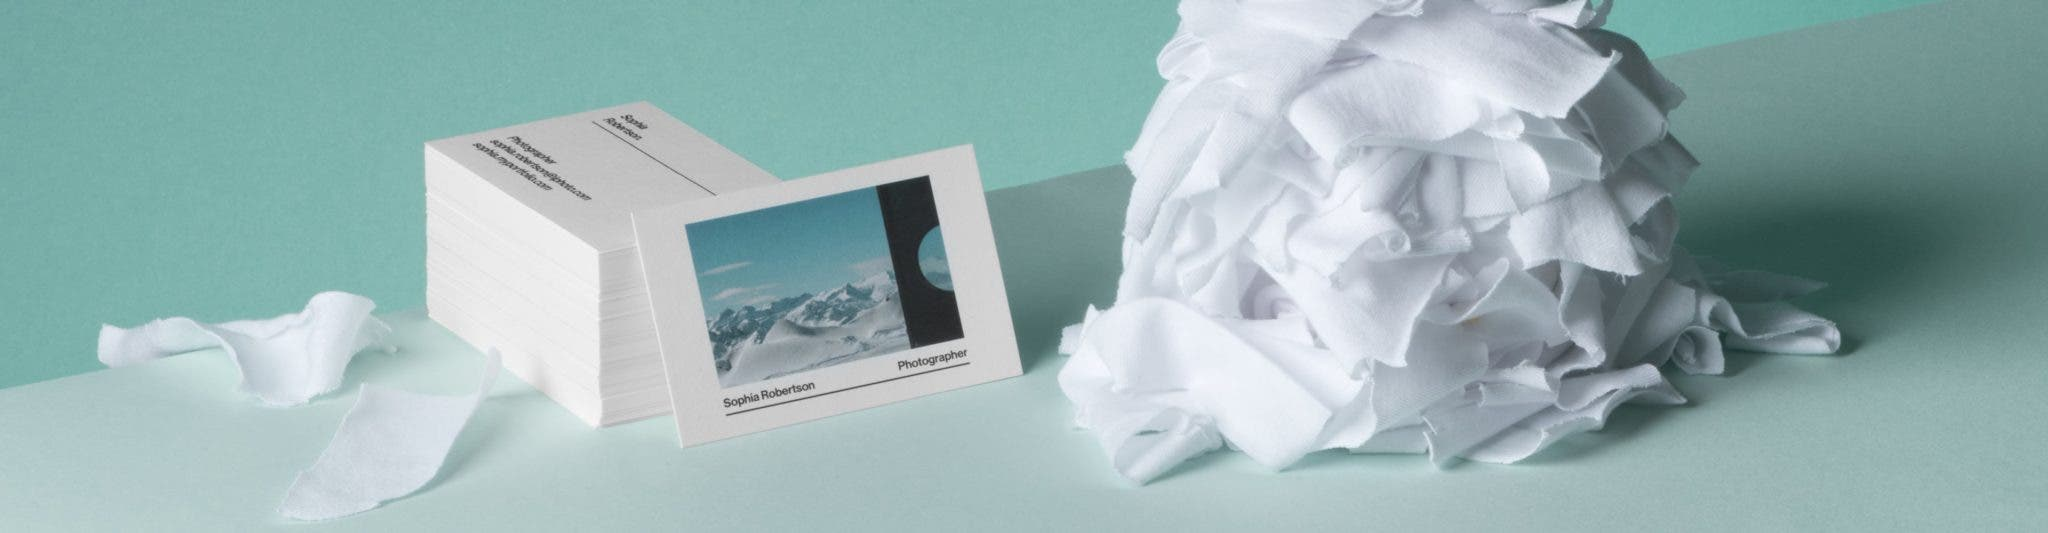 Moo's Latest Business Cards are Made From Cotton